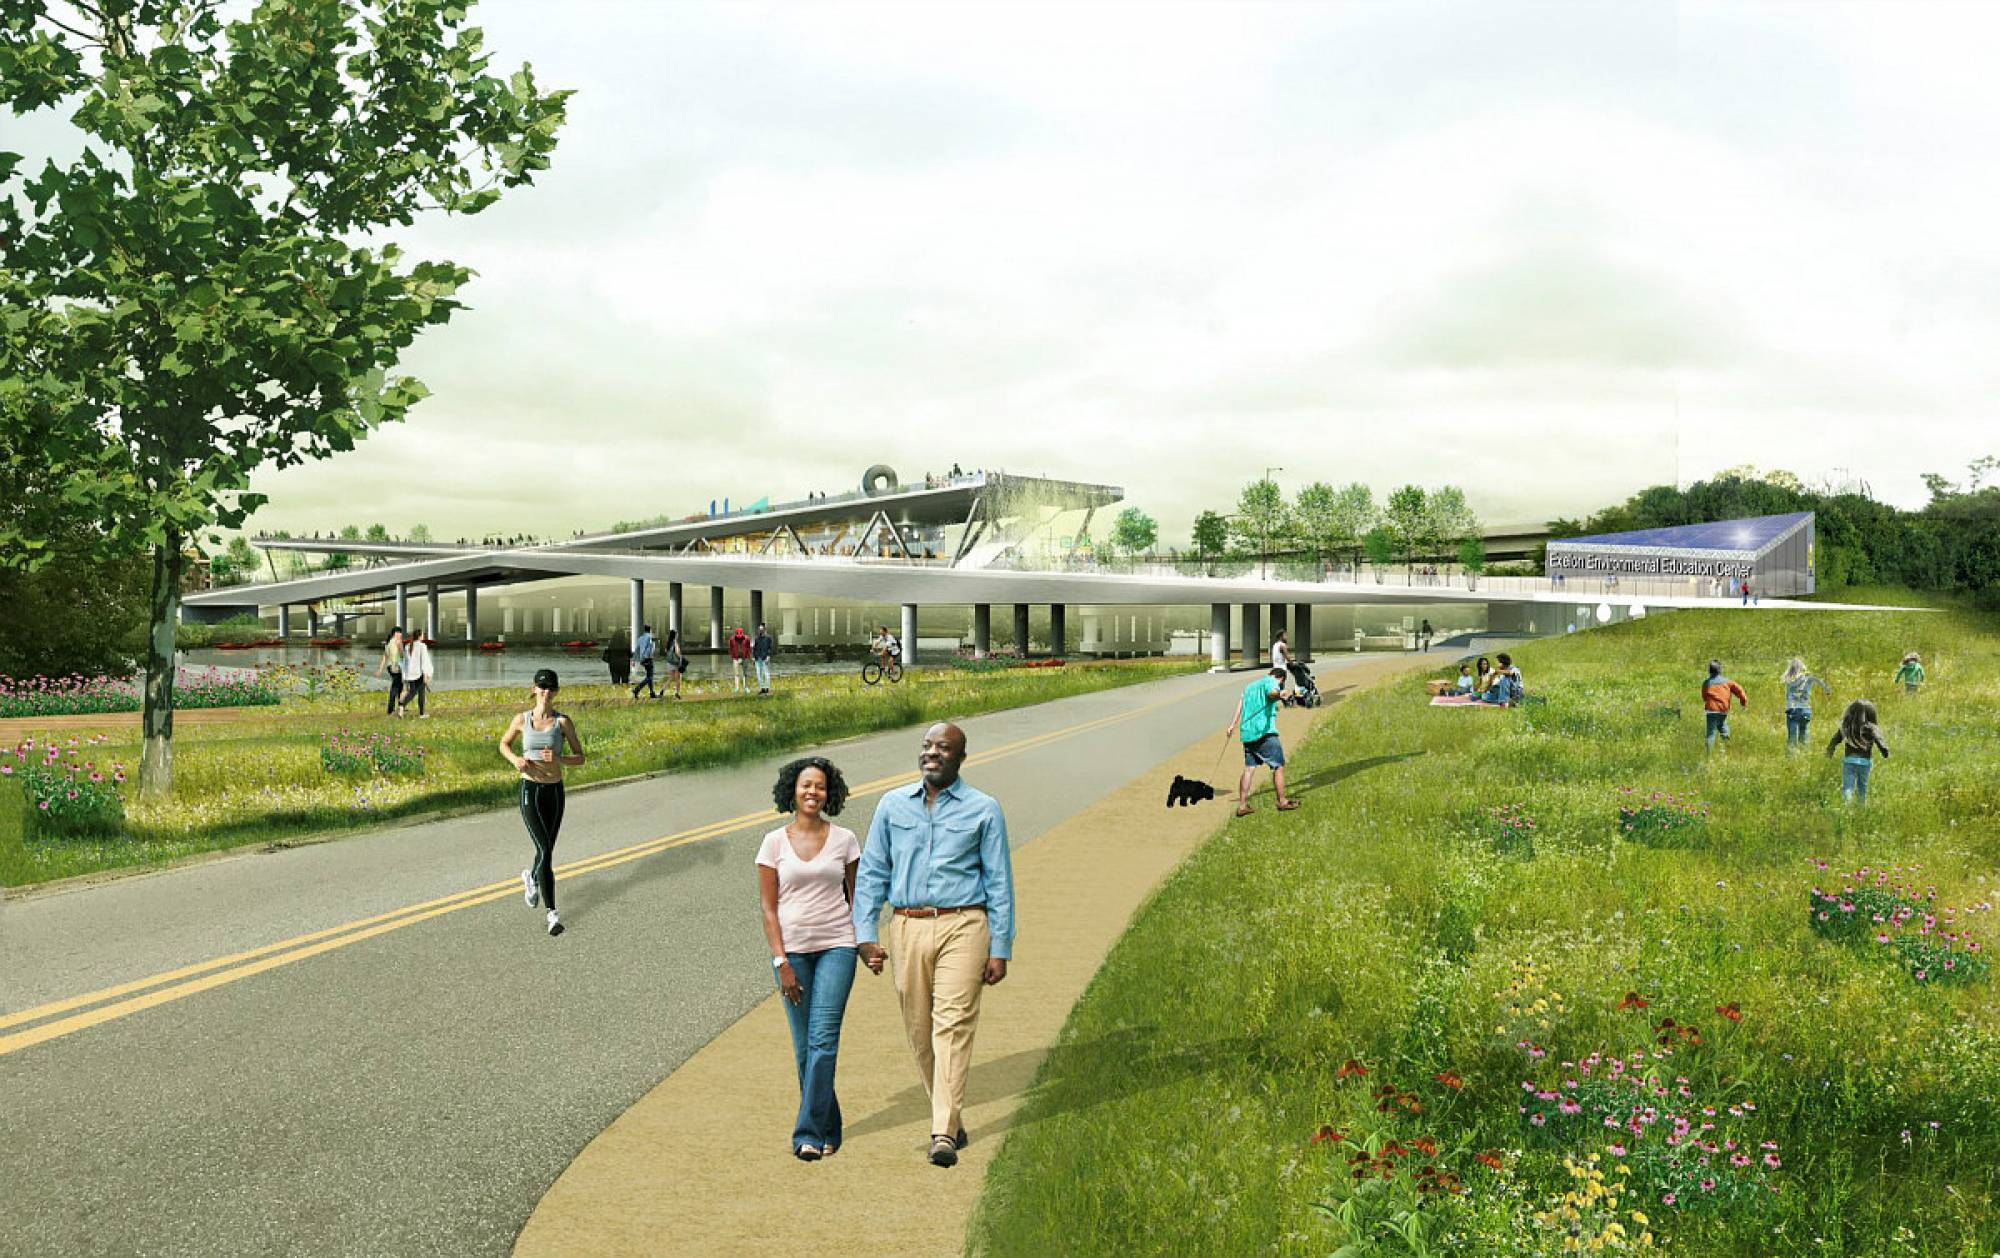 Rendering of bridge park from the East Bank. Image courtesy OLA + OLIN